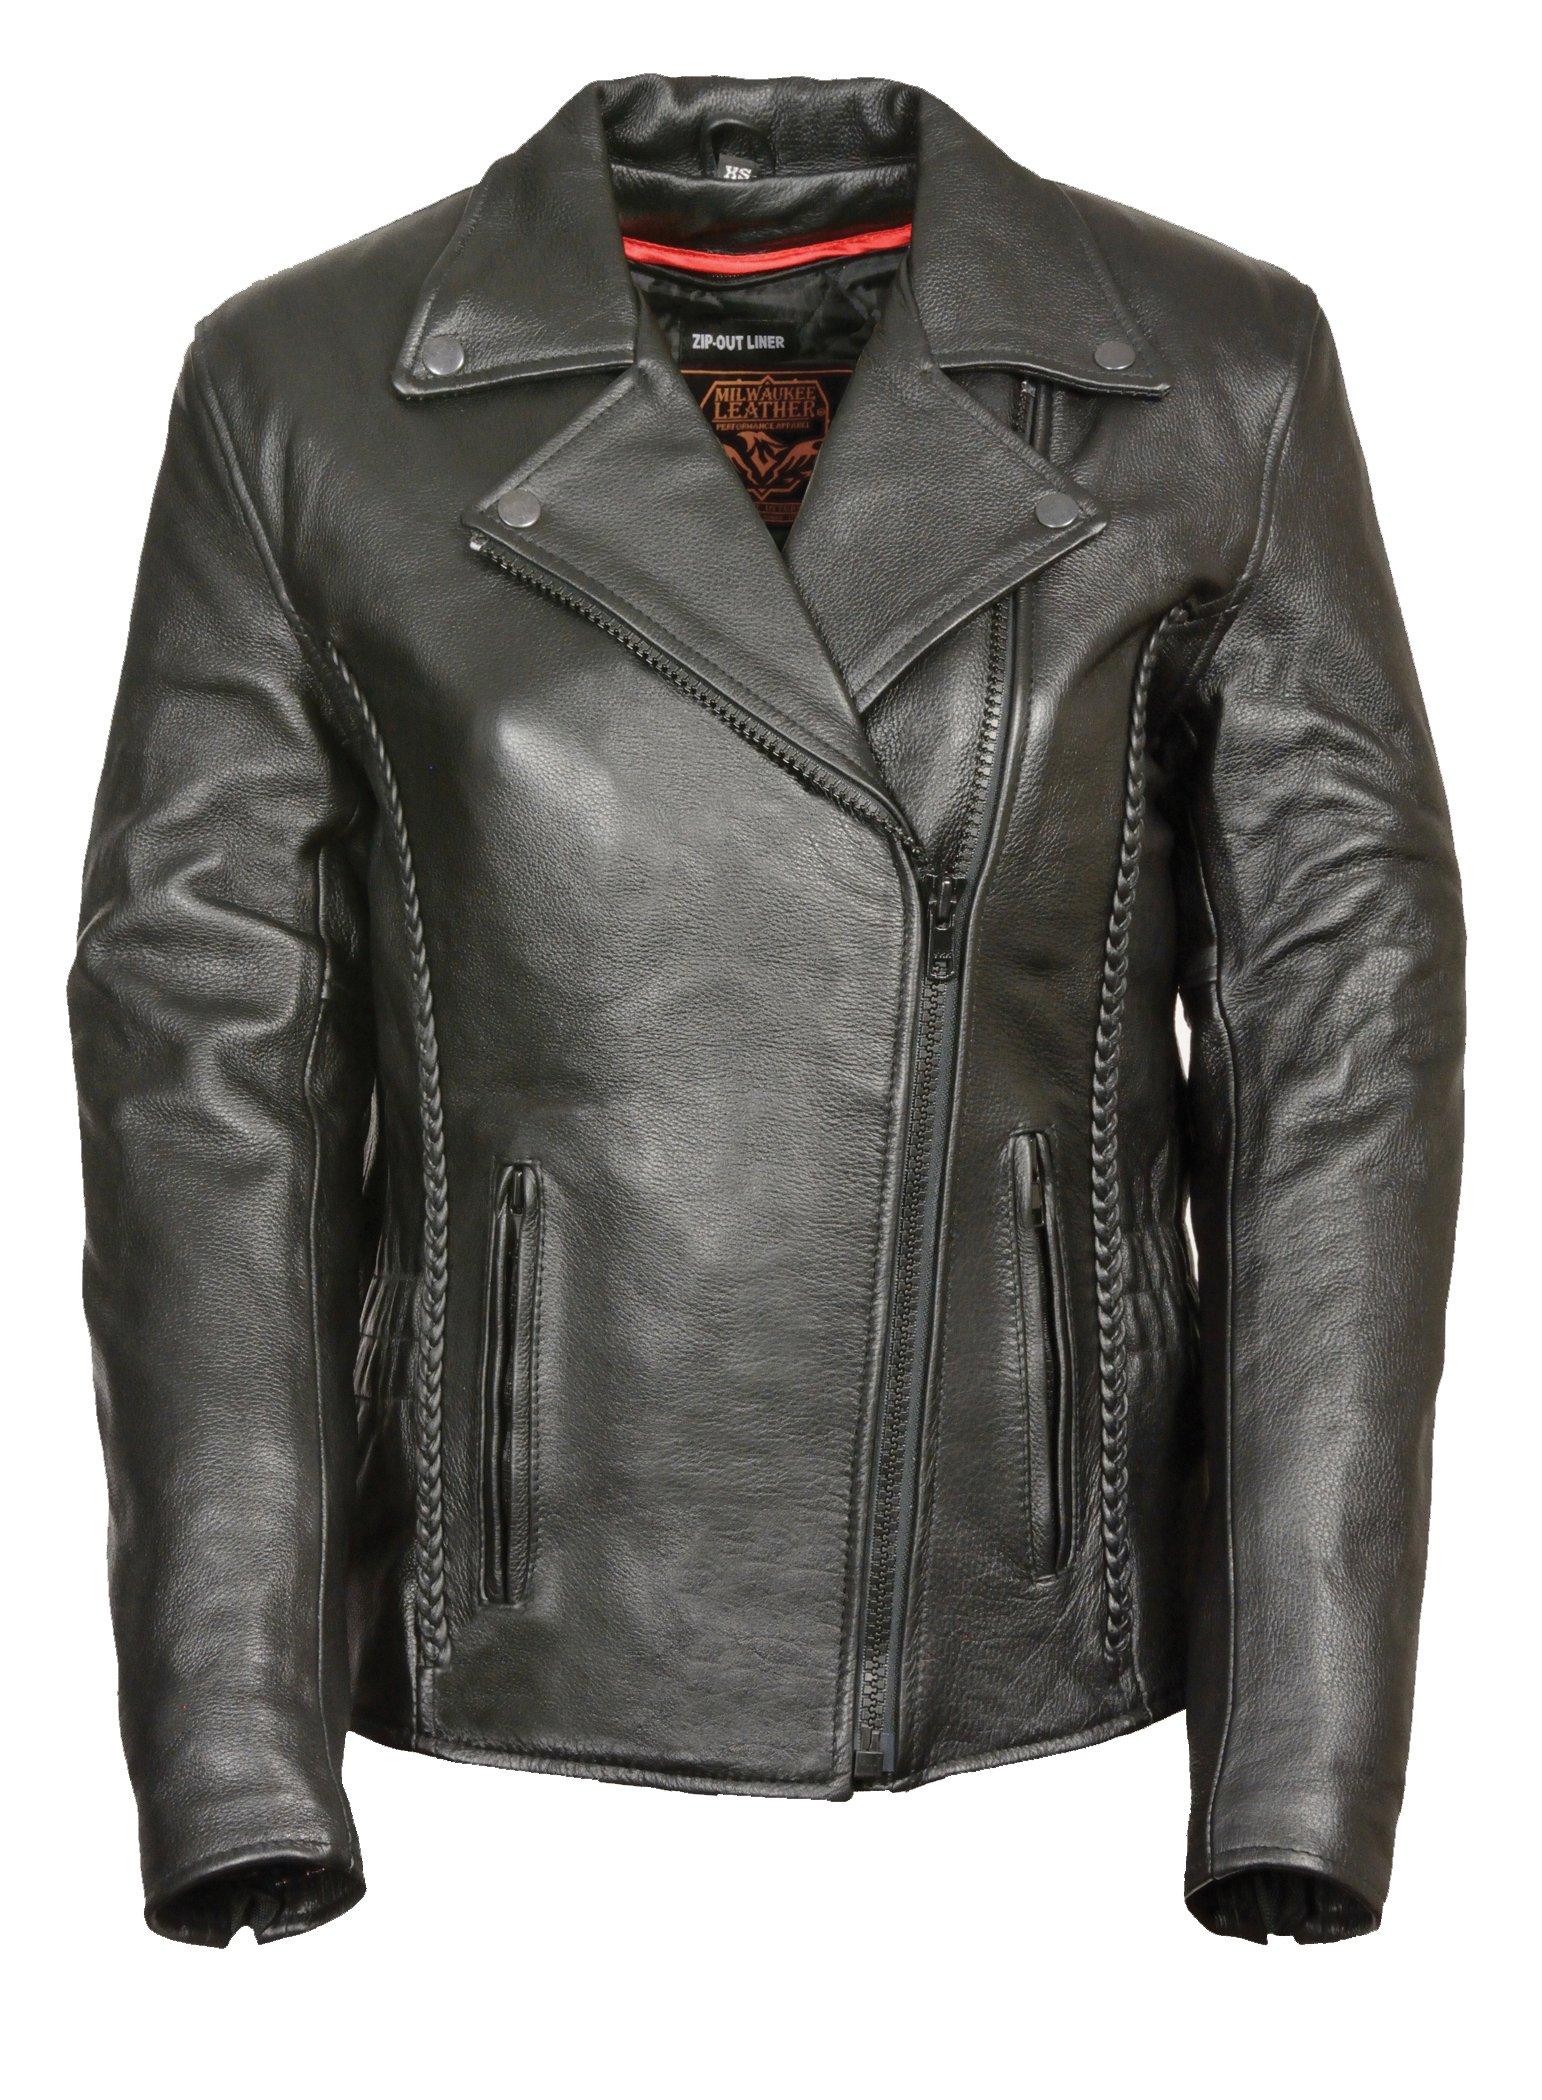 First Manufacturing Women's Blacked Out Hourglass Leather Jacket. FIL103NOCZ by The Milwaukee